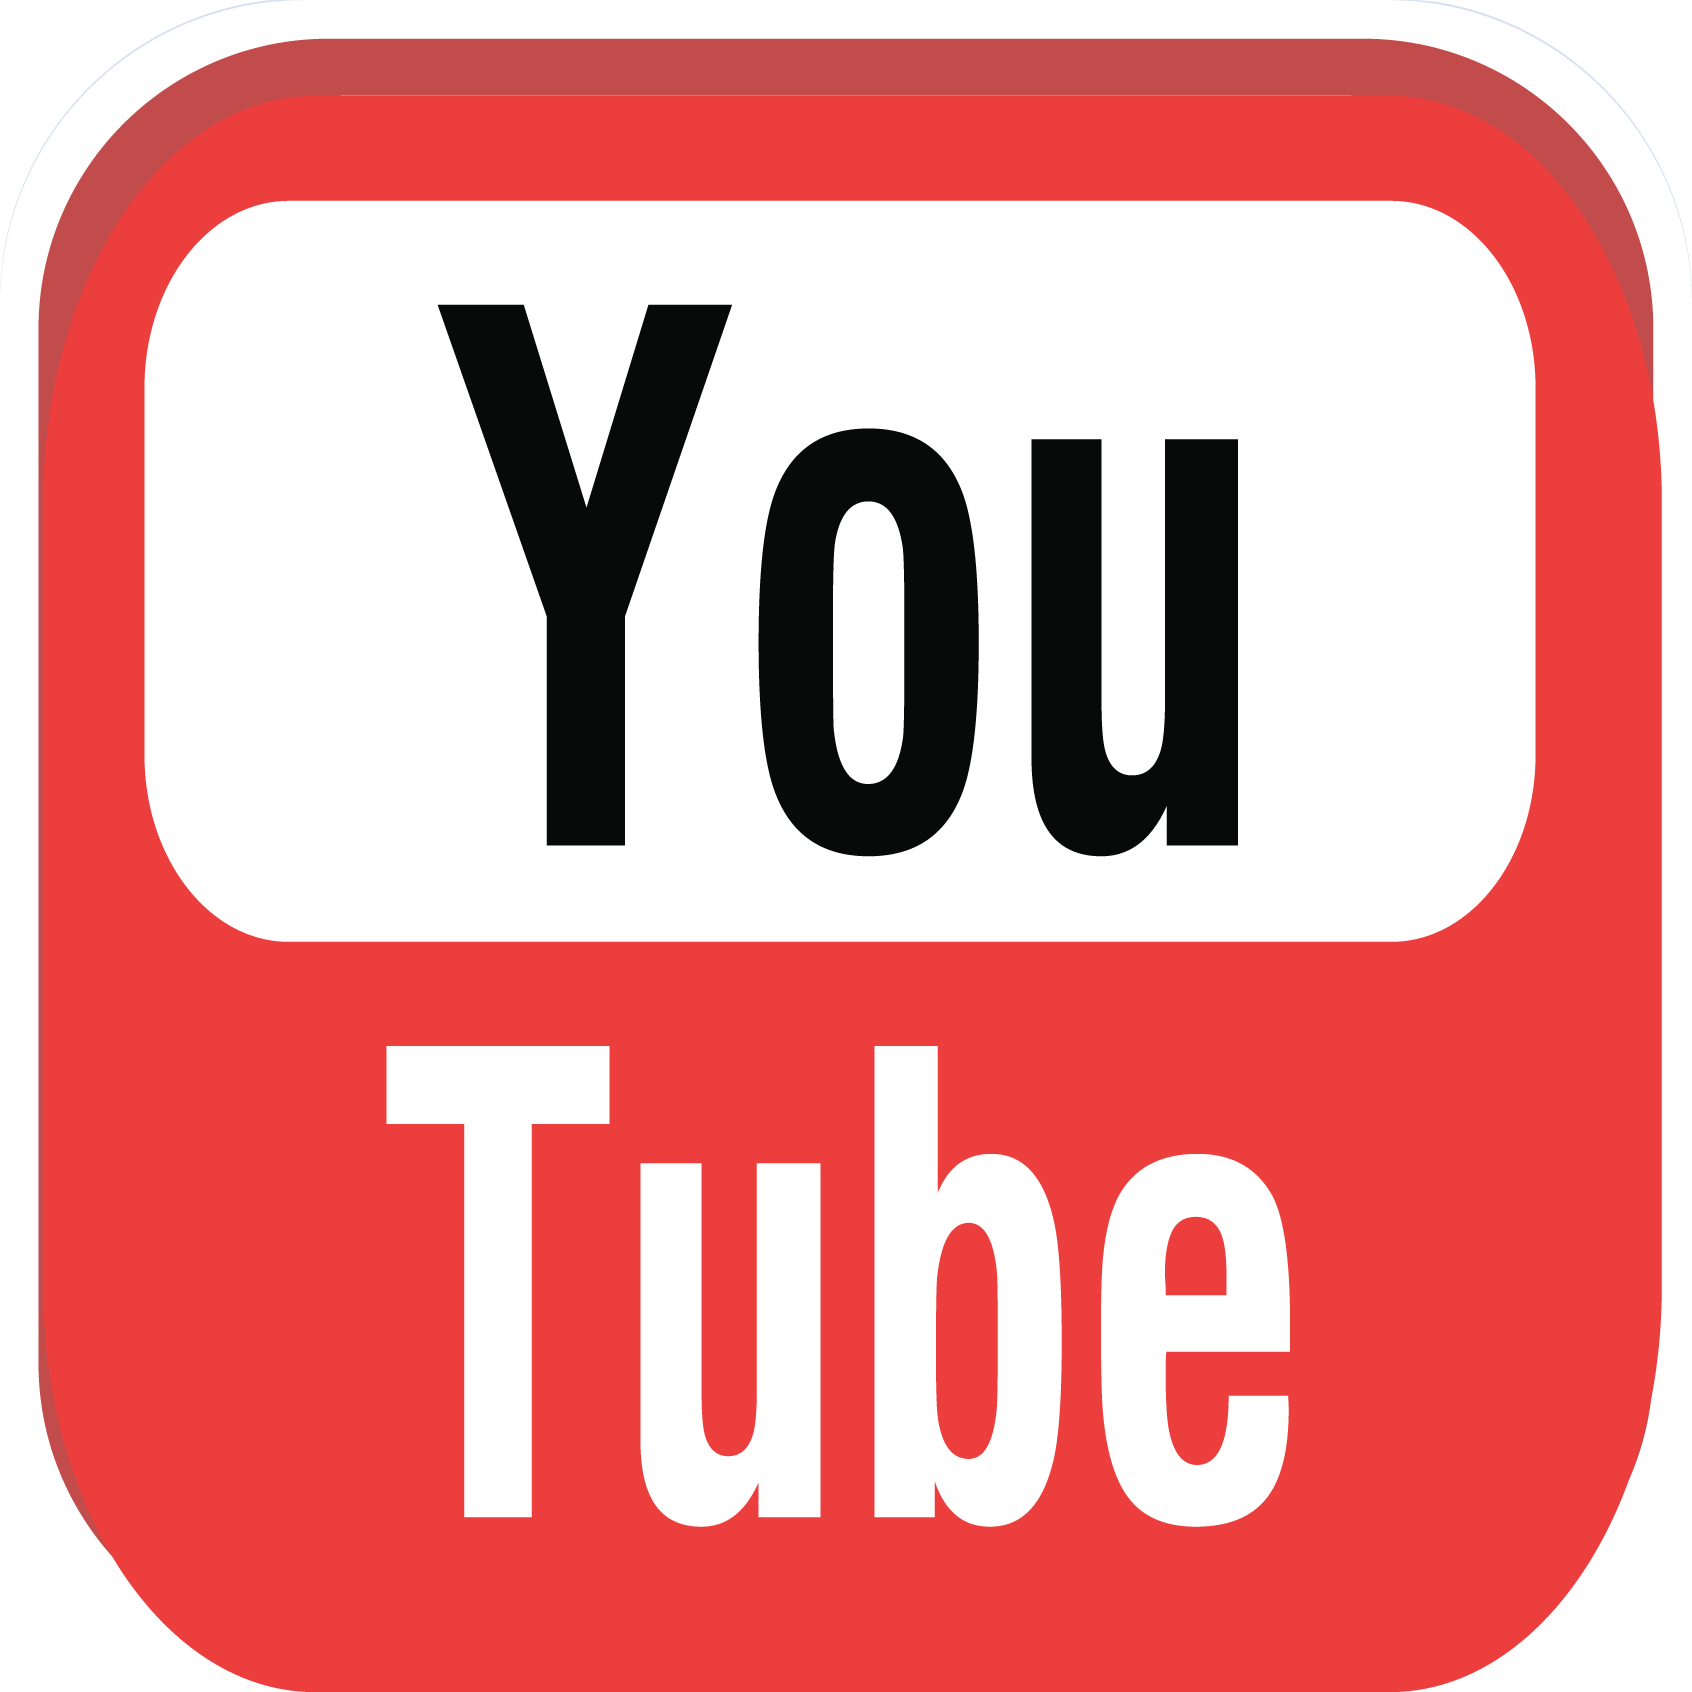 Youtube - Youtube HD PNG